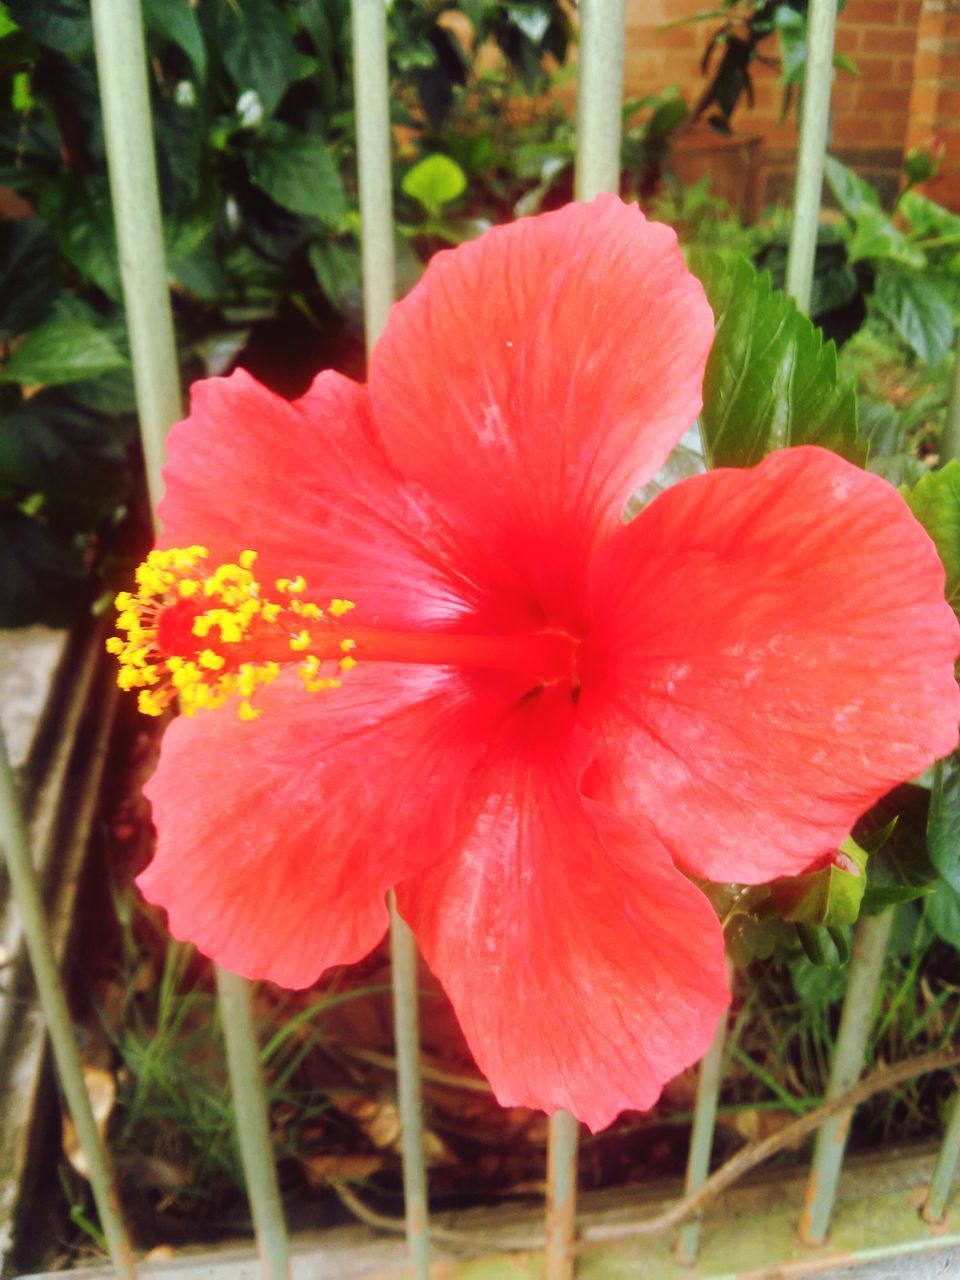 flower, fragility, petal, beauty in nature, growth, flower head, nature, plant, freshness, blooming, day, outdoors, no people, close-up, hibiscus, petunia